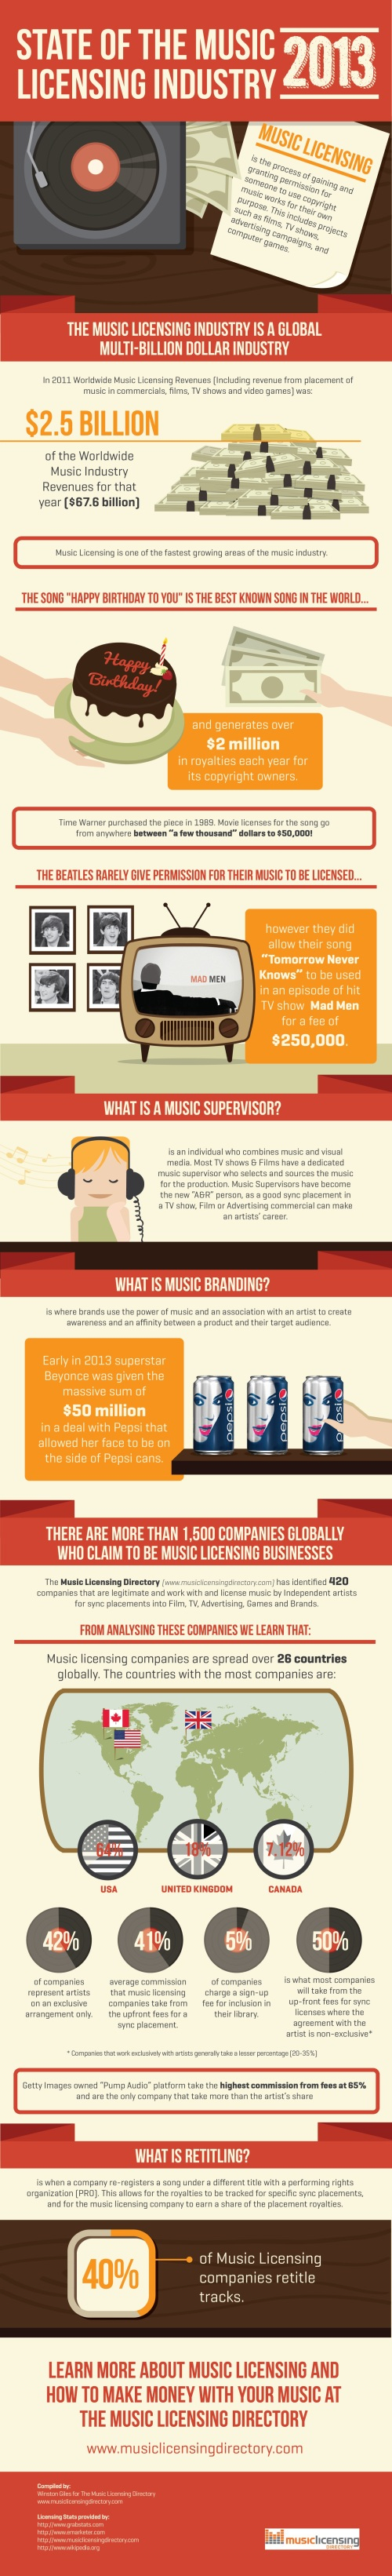 state-of-the-music-licensing-industry--2013_5151720a26c57